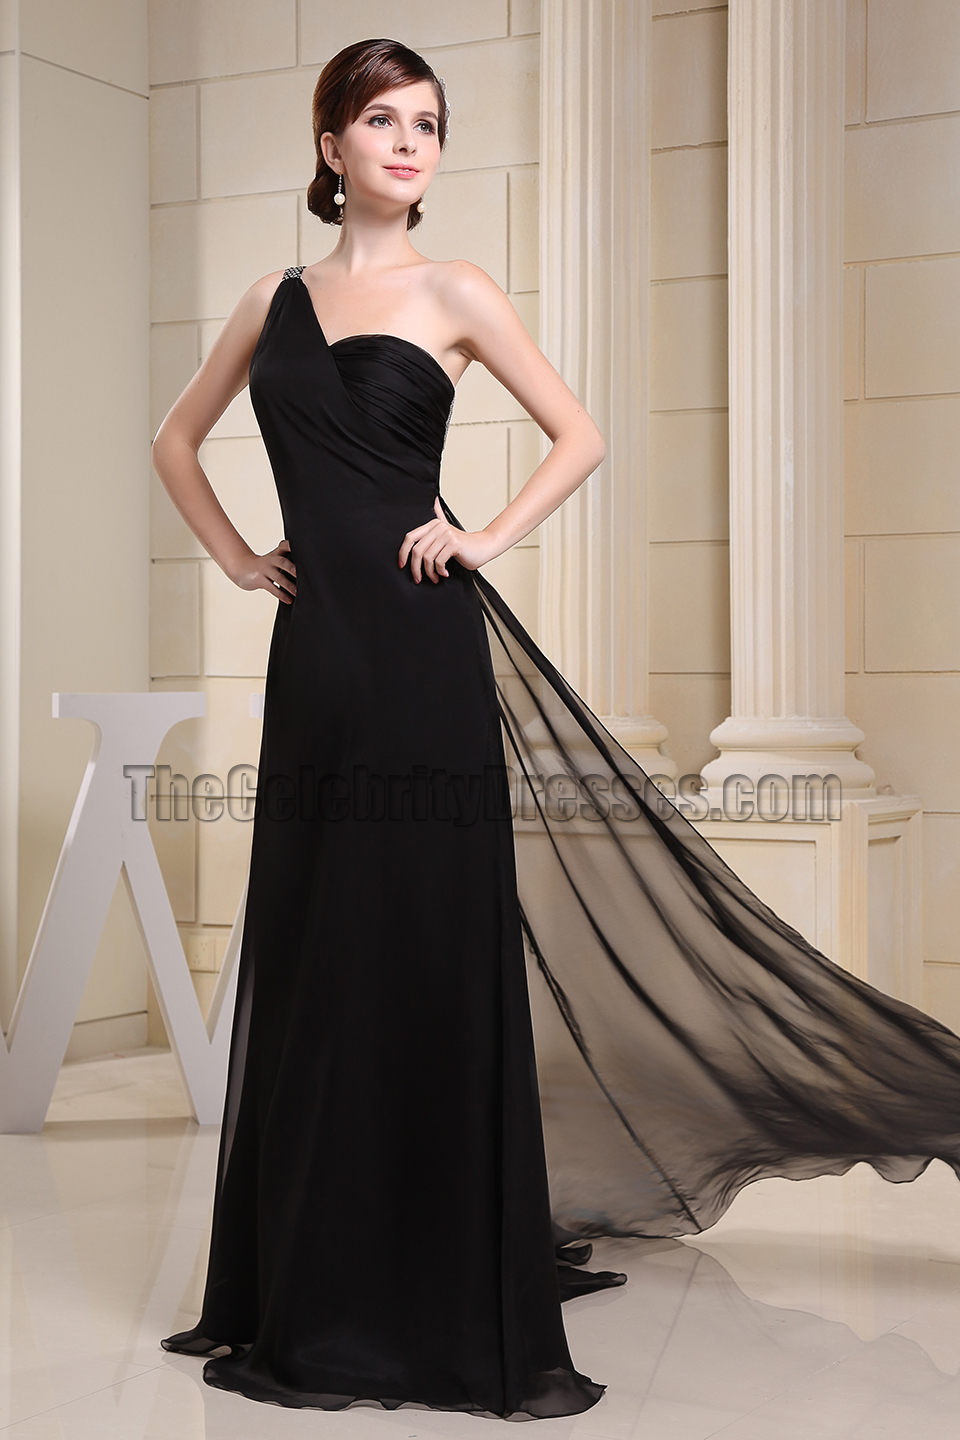 Backless Black One Shoulder Prom Dress Evening Formal Dresses ...